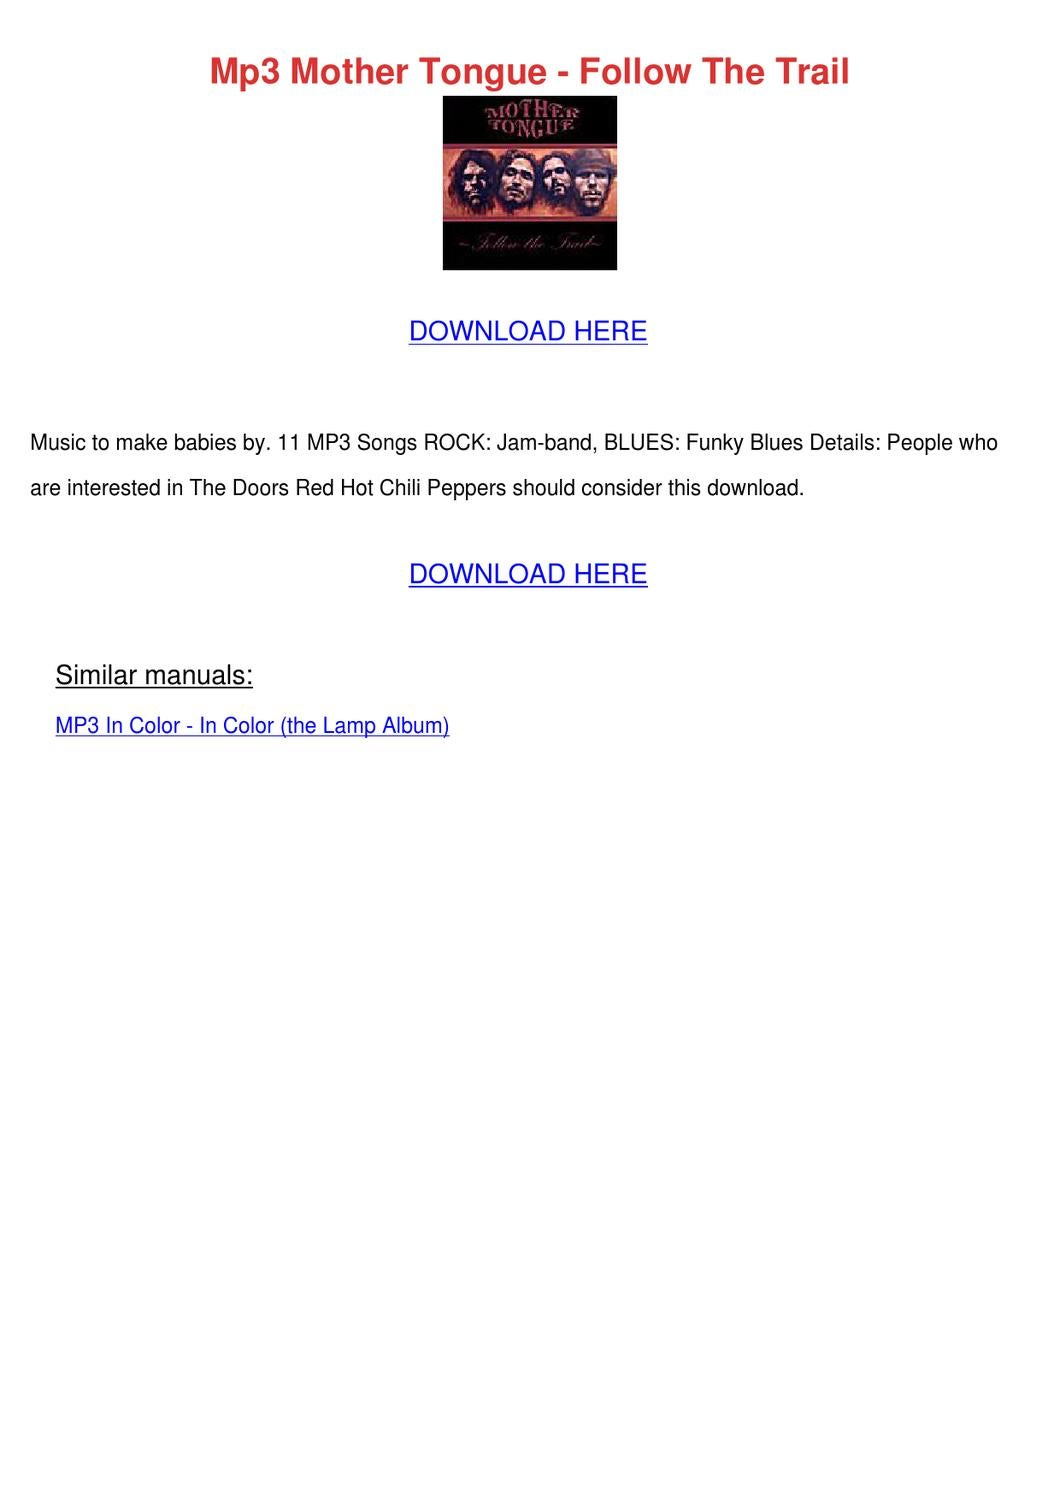 Jamming mp3 cc download - One Of Baseball's Most Famous Comedians - Jammer-buy Forum